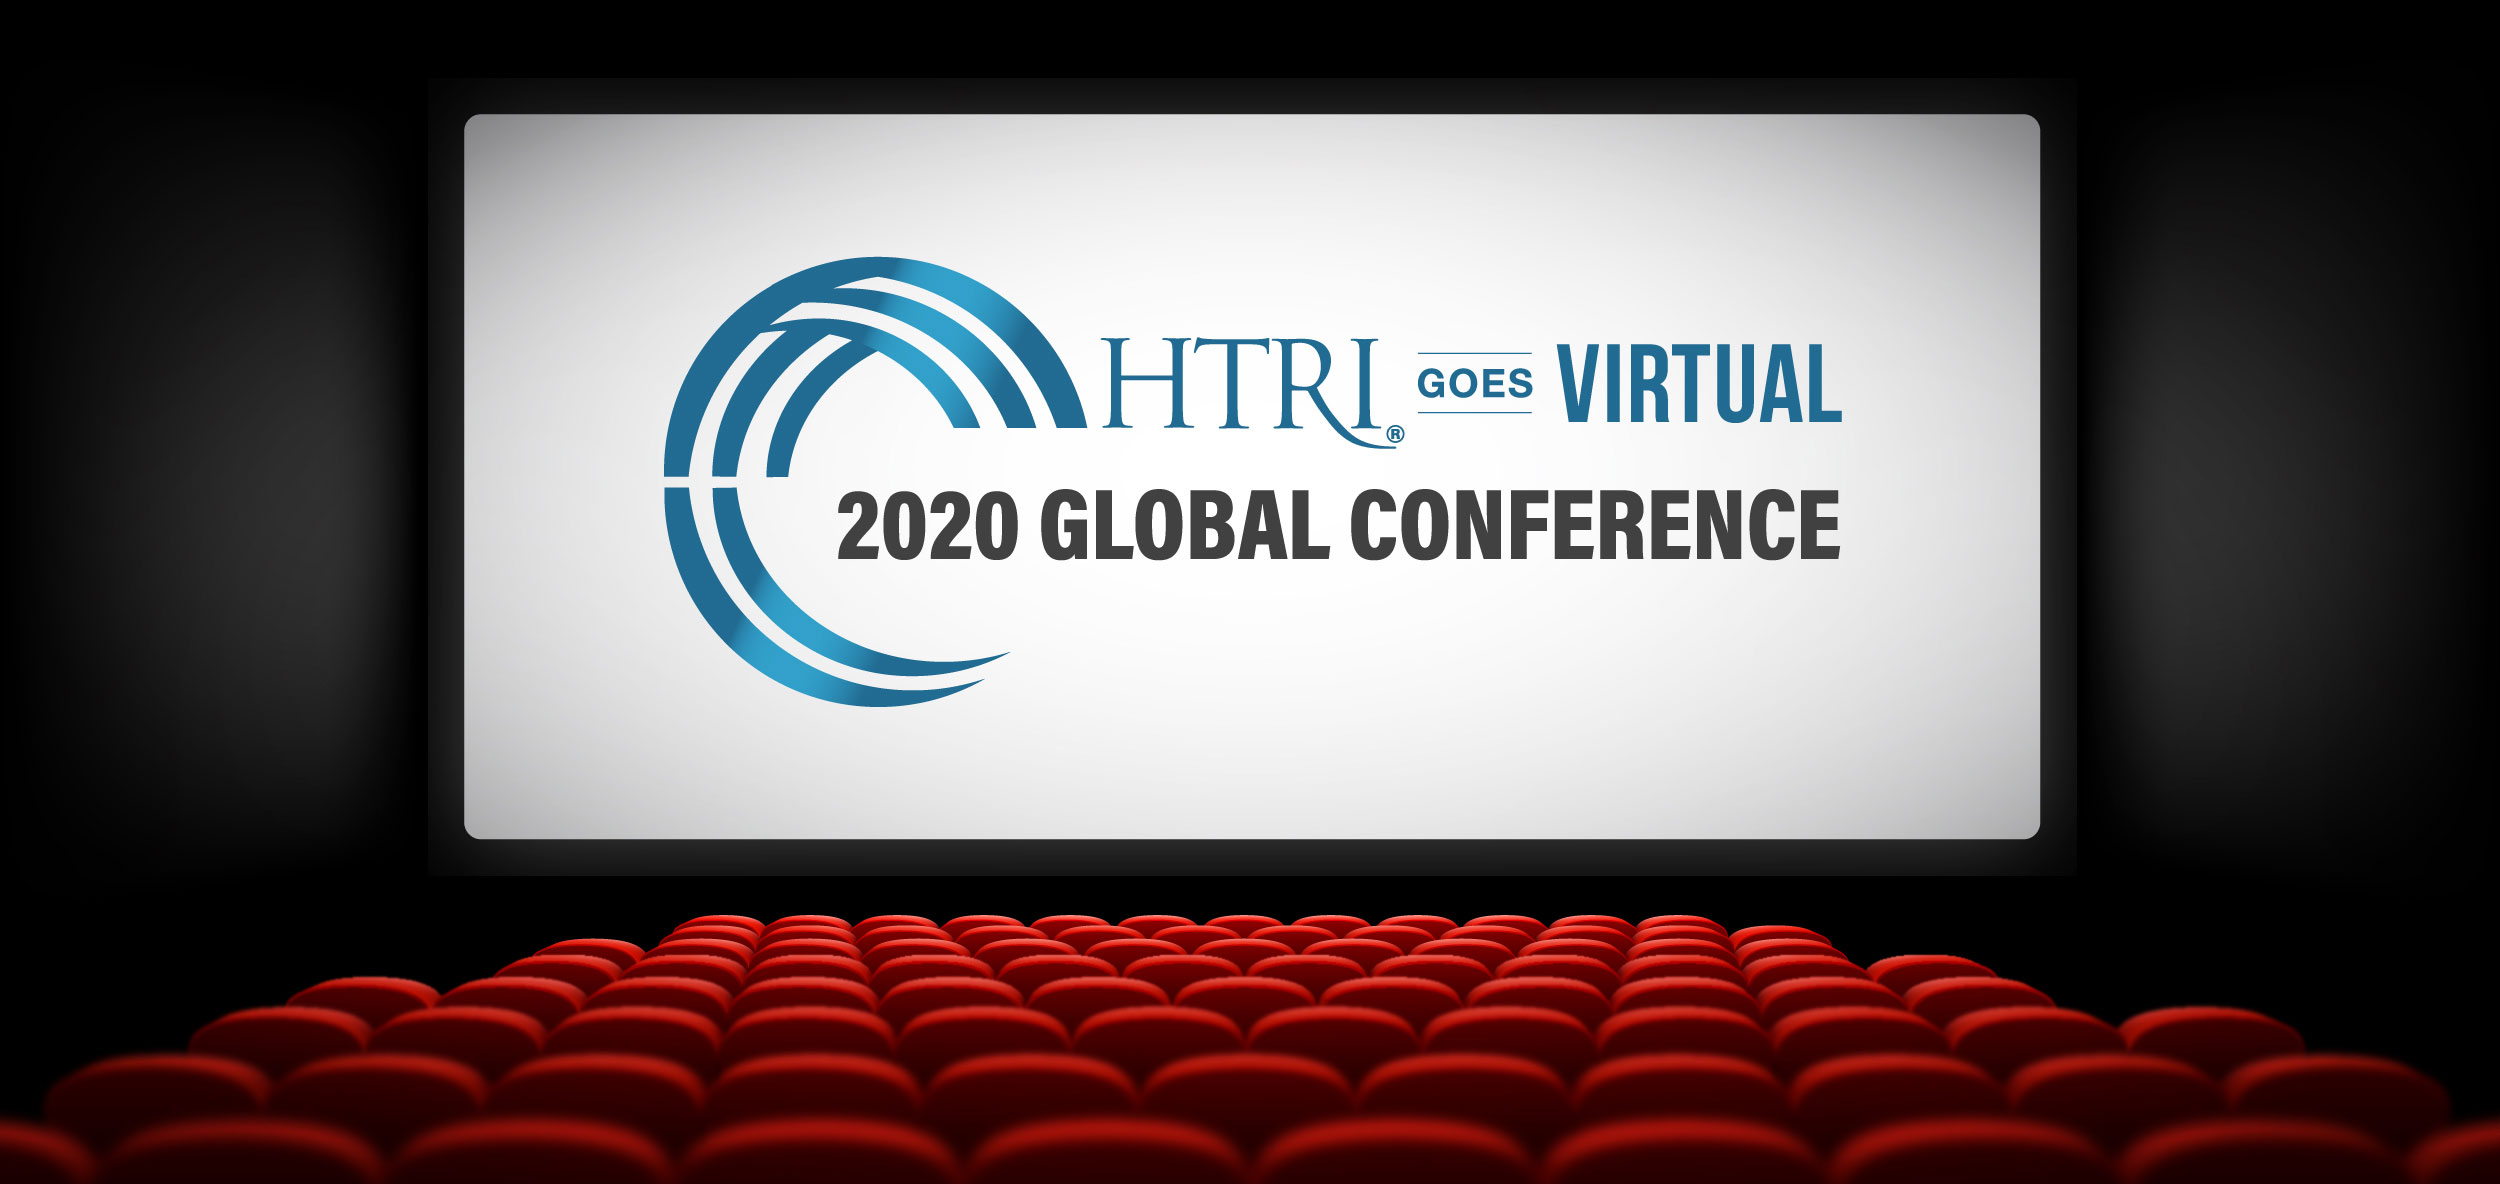 HTRI virtual global conference banner